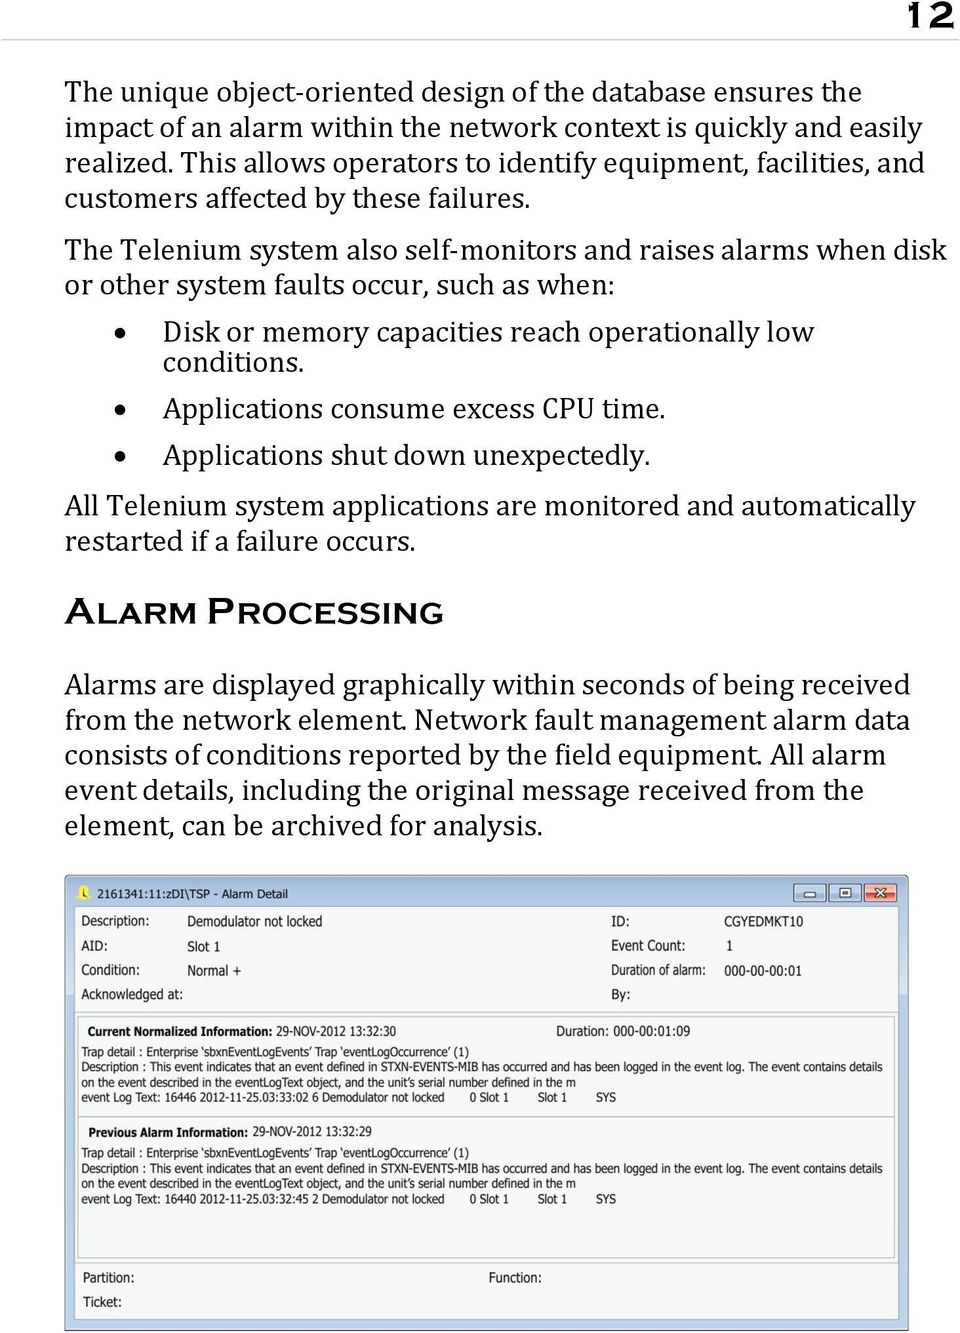 12 The Telenium system also self-monitors and raises alarms when disk or other system faults occur, such as when: Disk or memory capacities reach operationally low conditions.